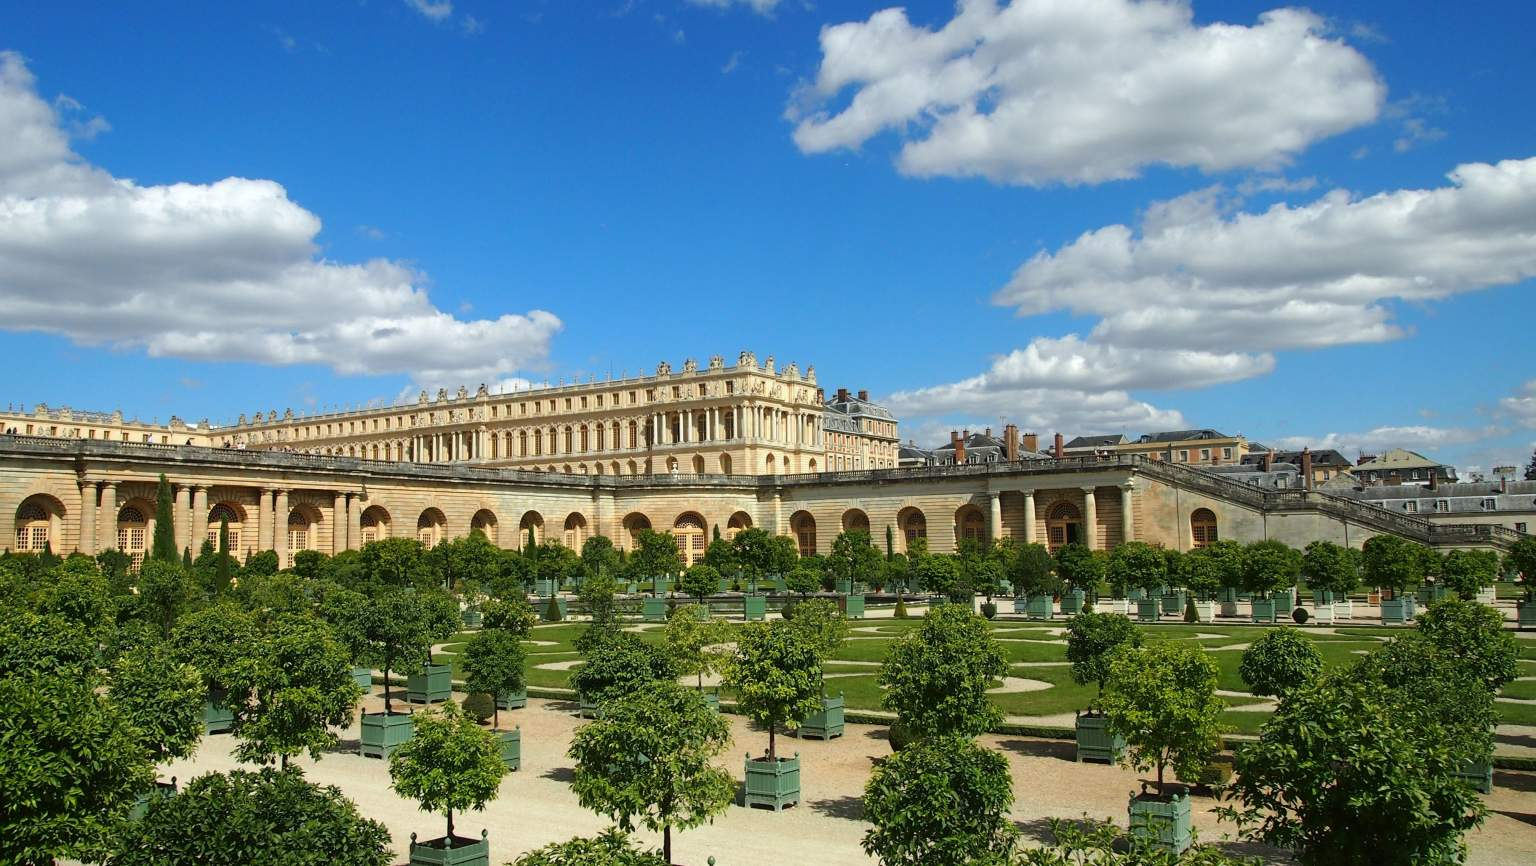 Hotel Paris Boulogne, 4 Star Hotel, Palace of Versailles and Gardens